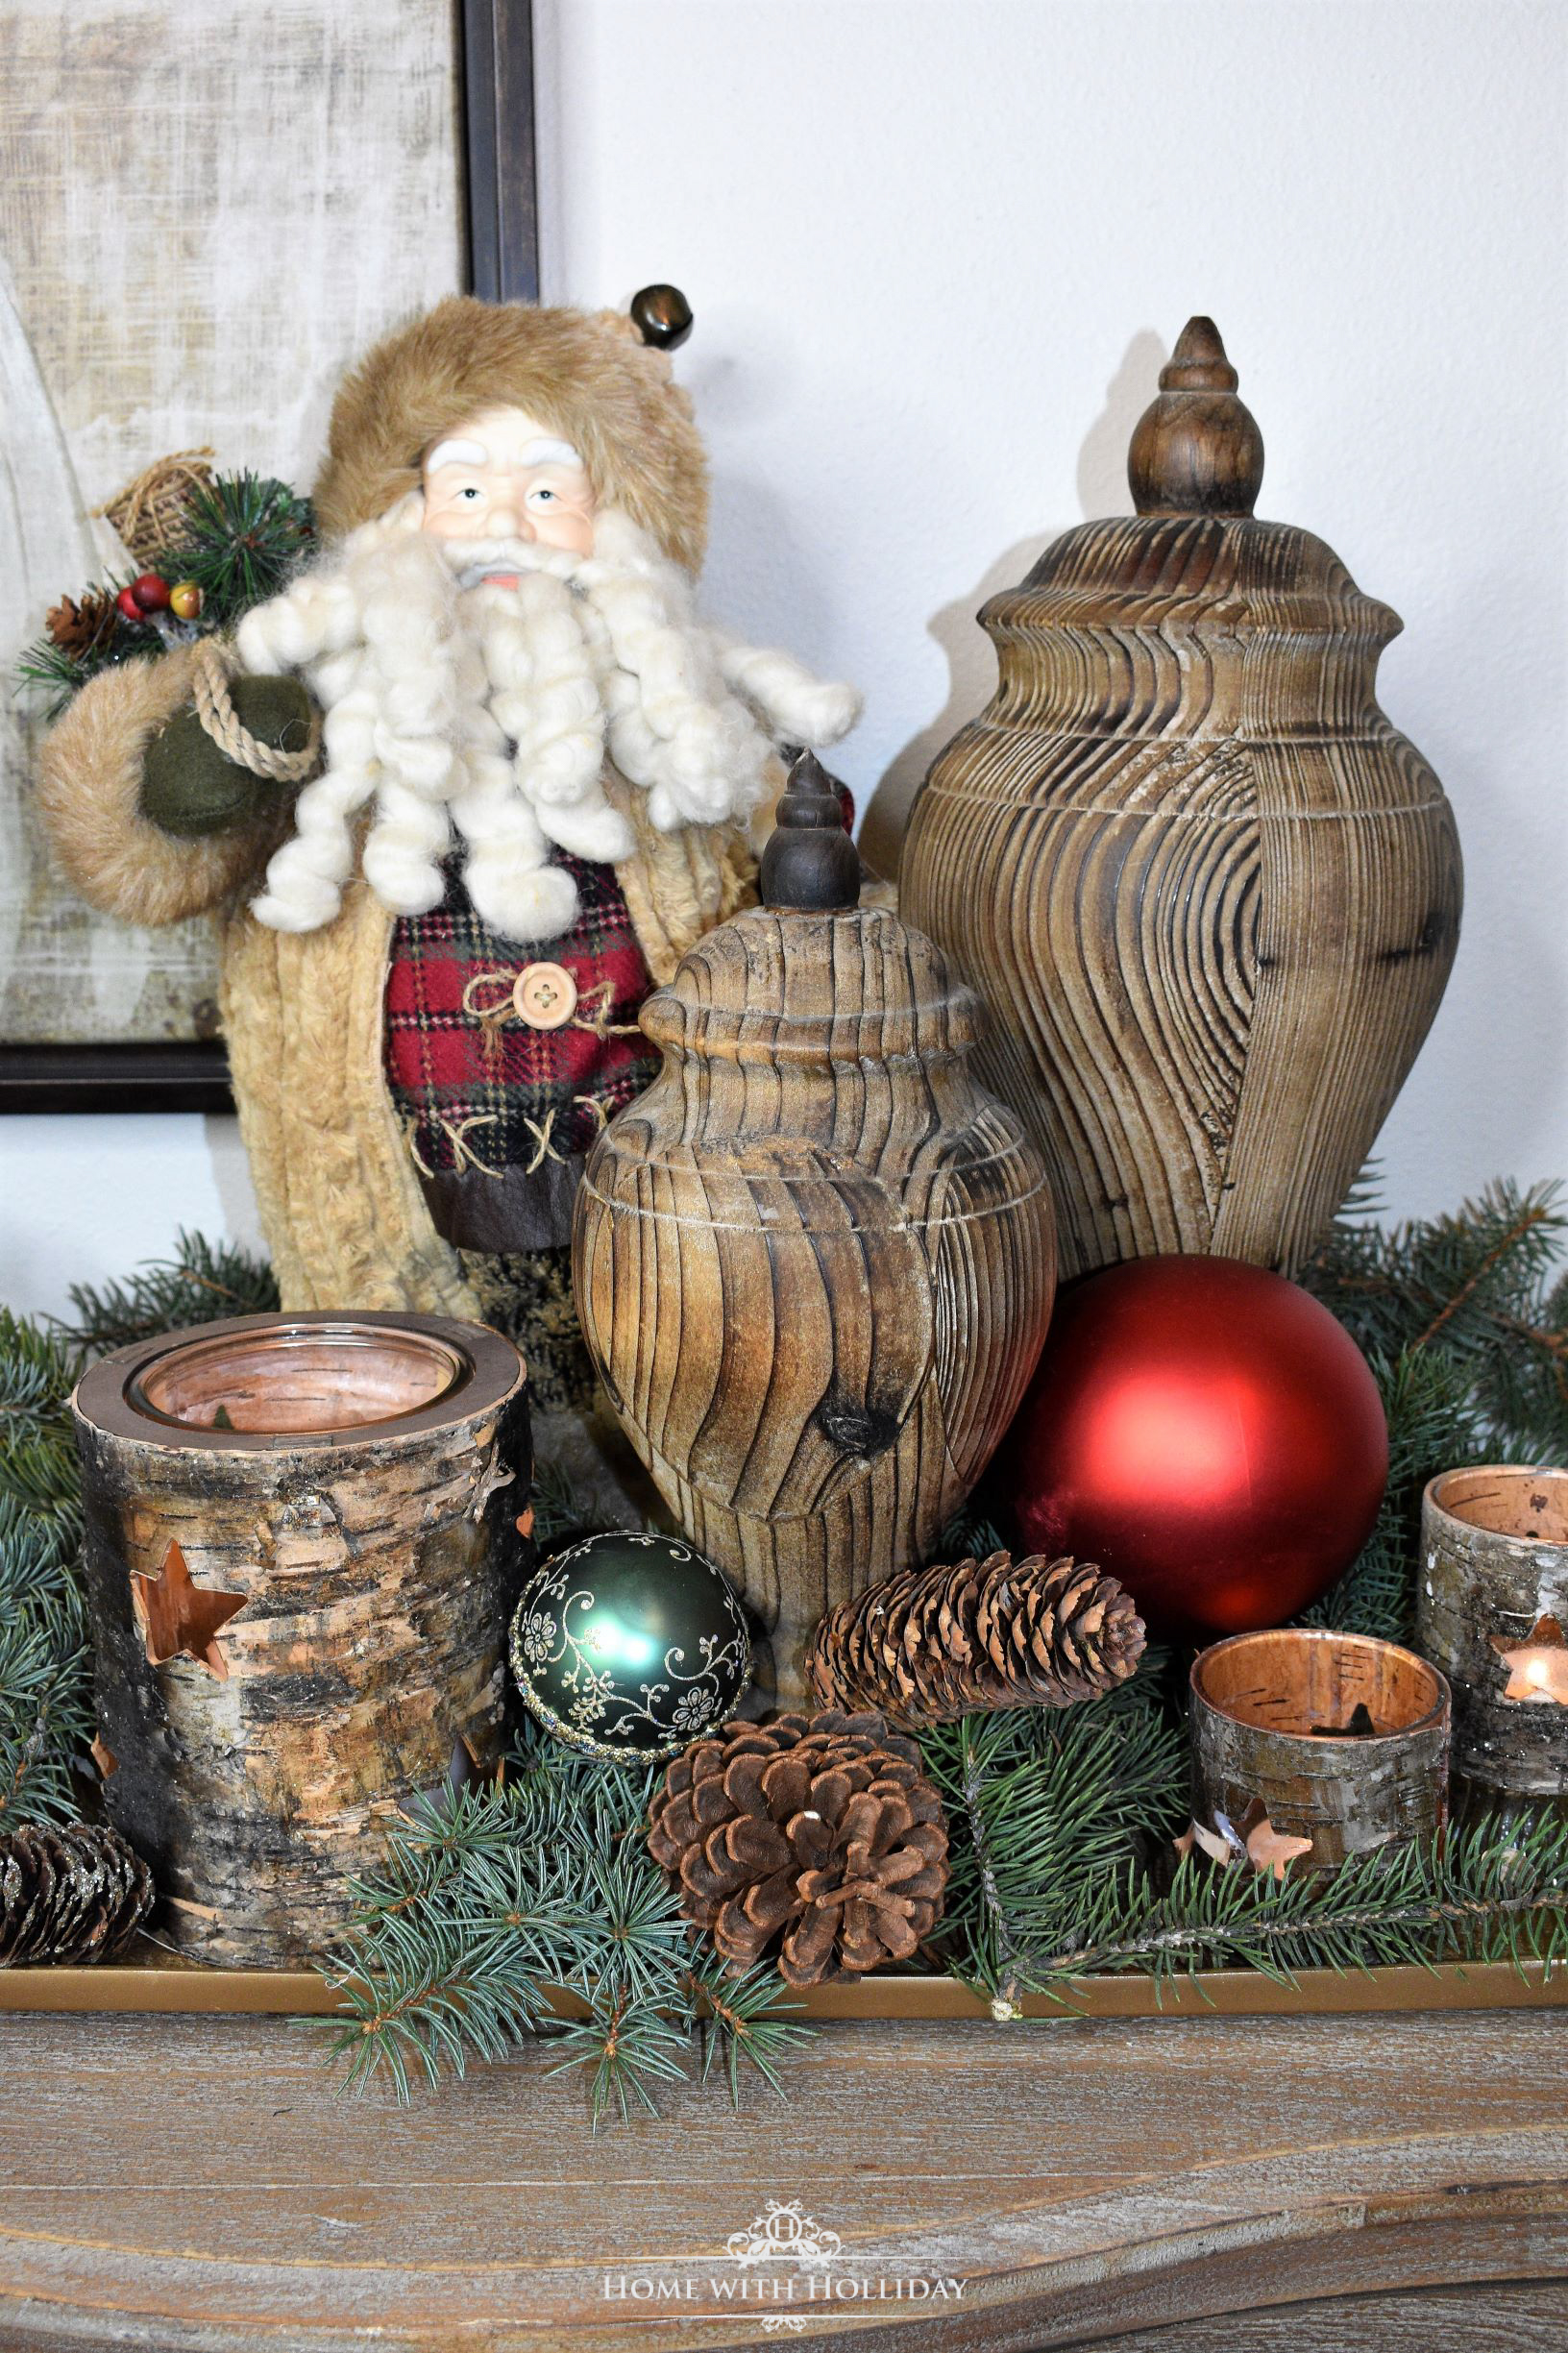 Christmas Decorating Ideas - Use Natural Elements - Home with Holliday